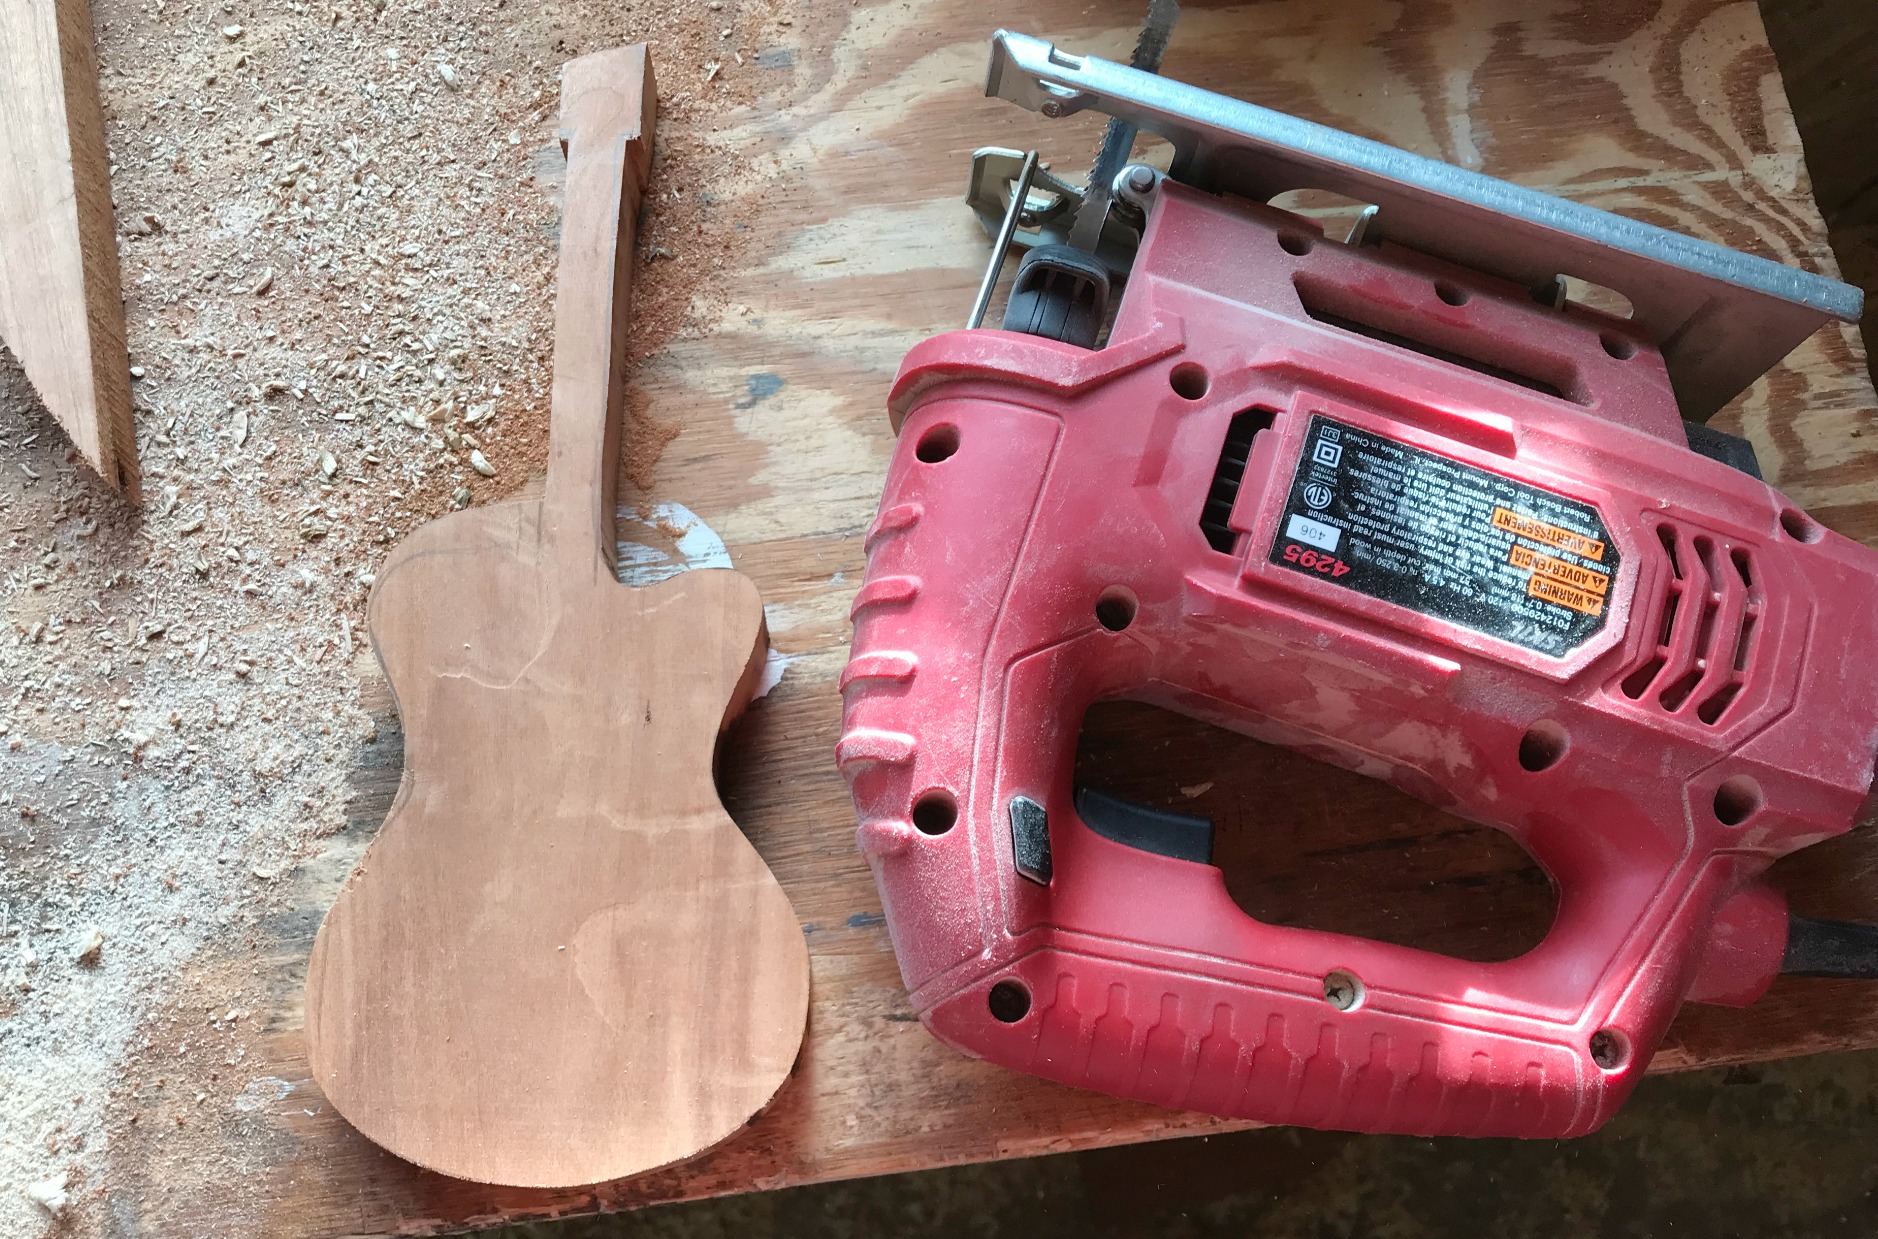 Use jig saw to cut scrap wood into Guitar shape